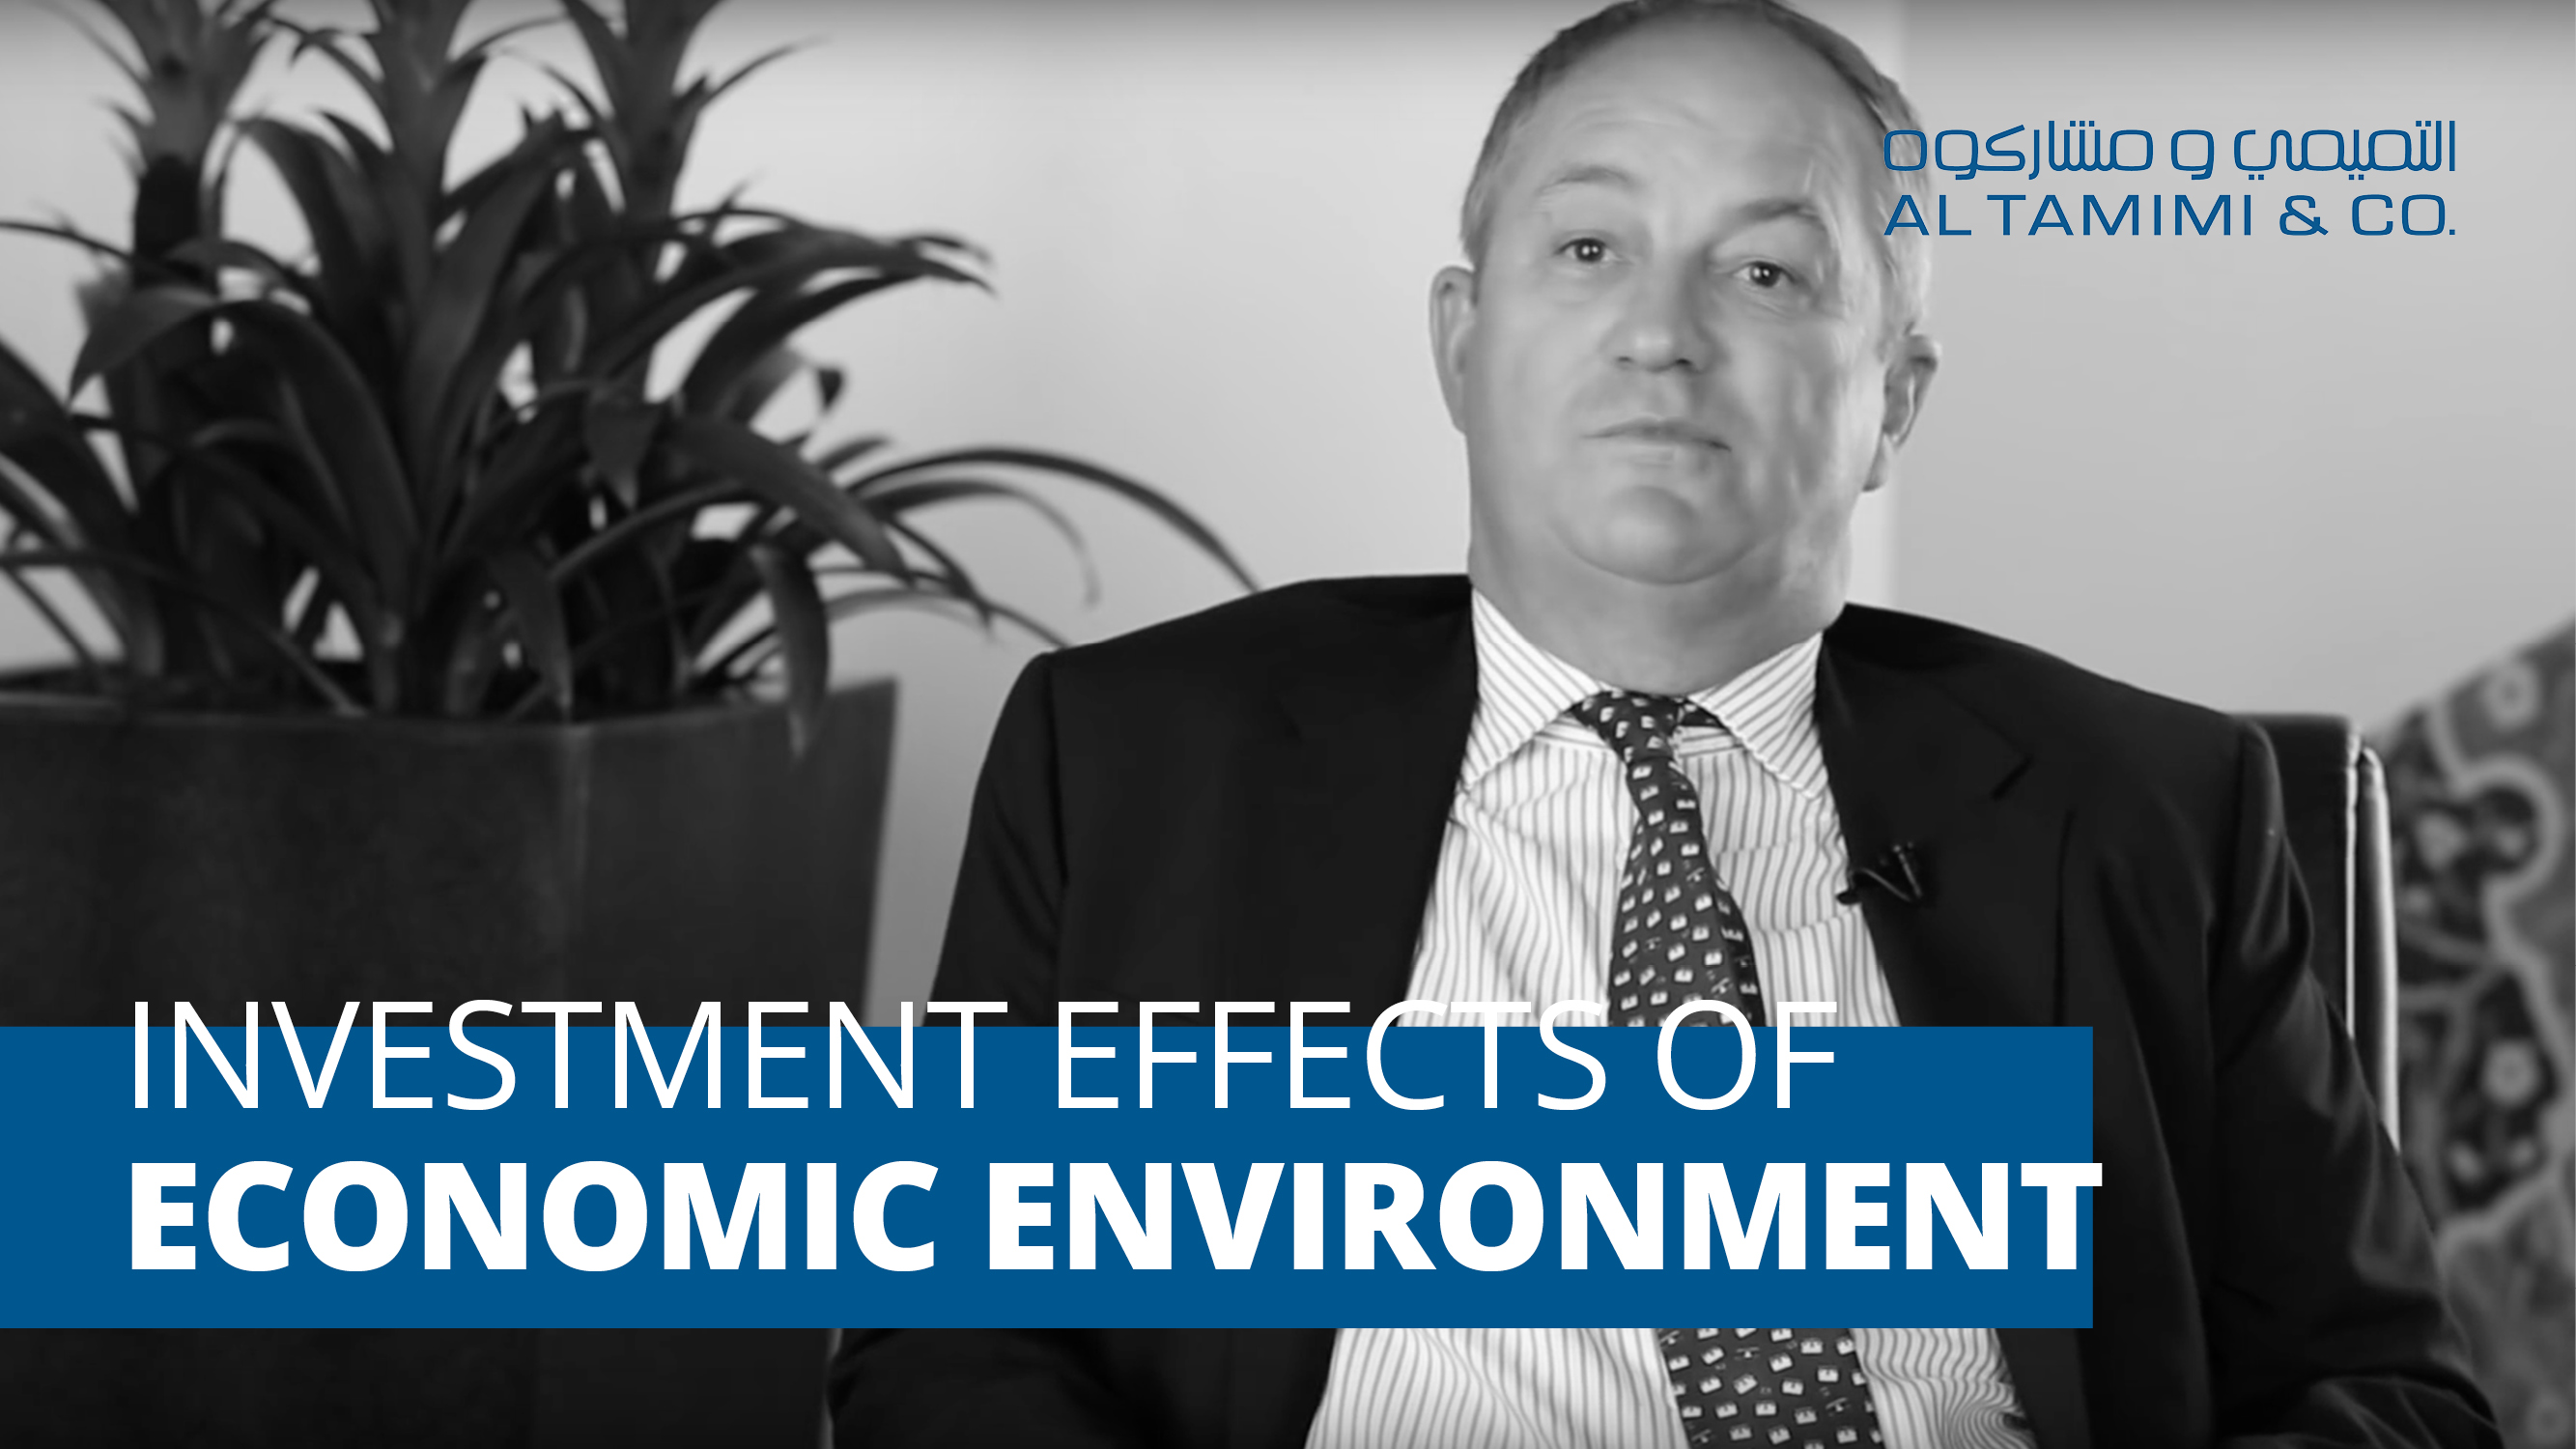 The effect of the economic environment on investment in the Middle East